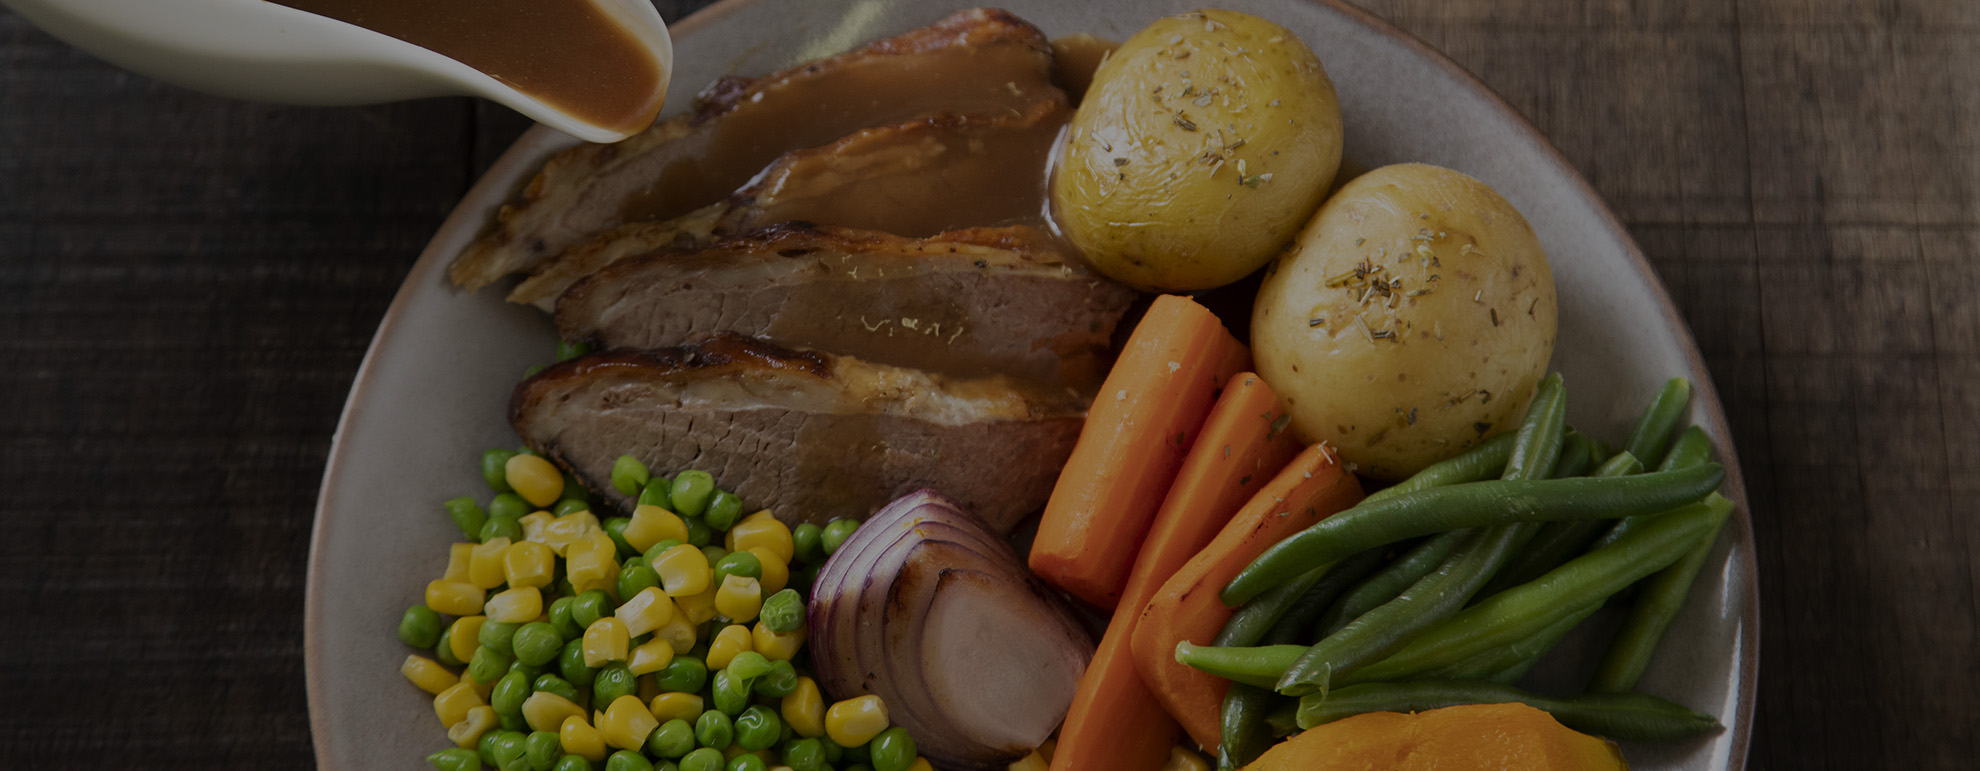 Roast Beef Meal with Potatoes